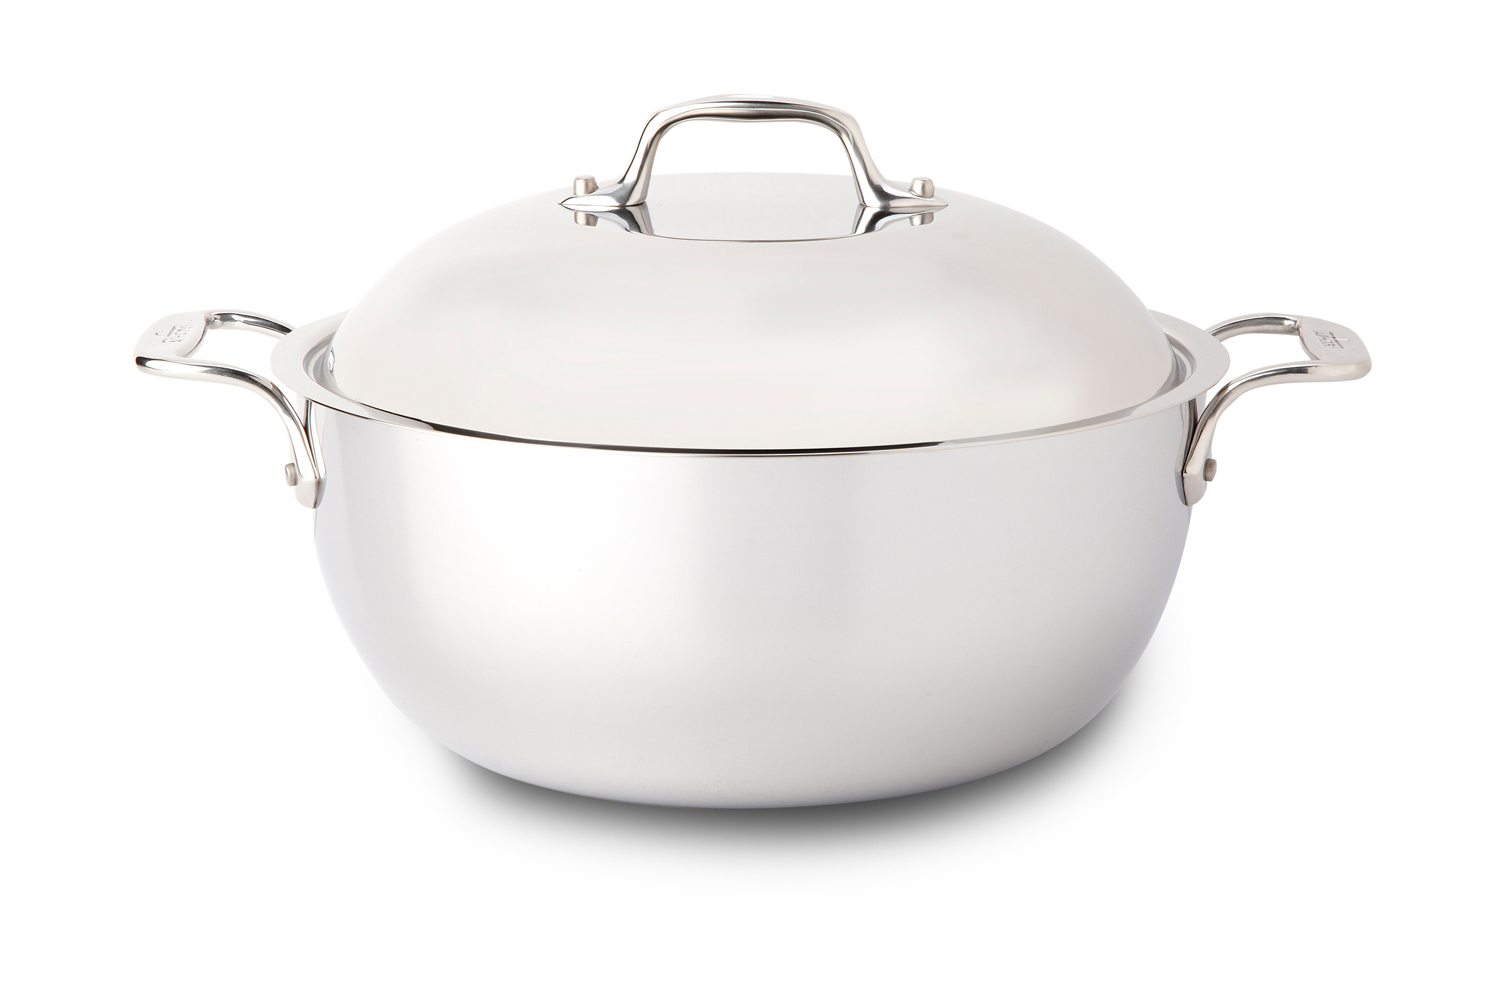 All-Clad d3 Tri-Ply Stainless Steel 5 1/2 qt. Dutch Oven